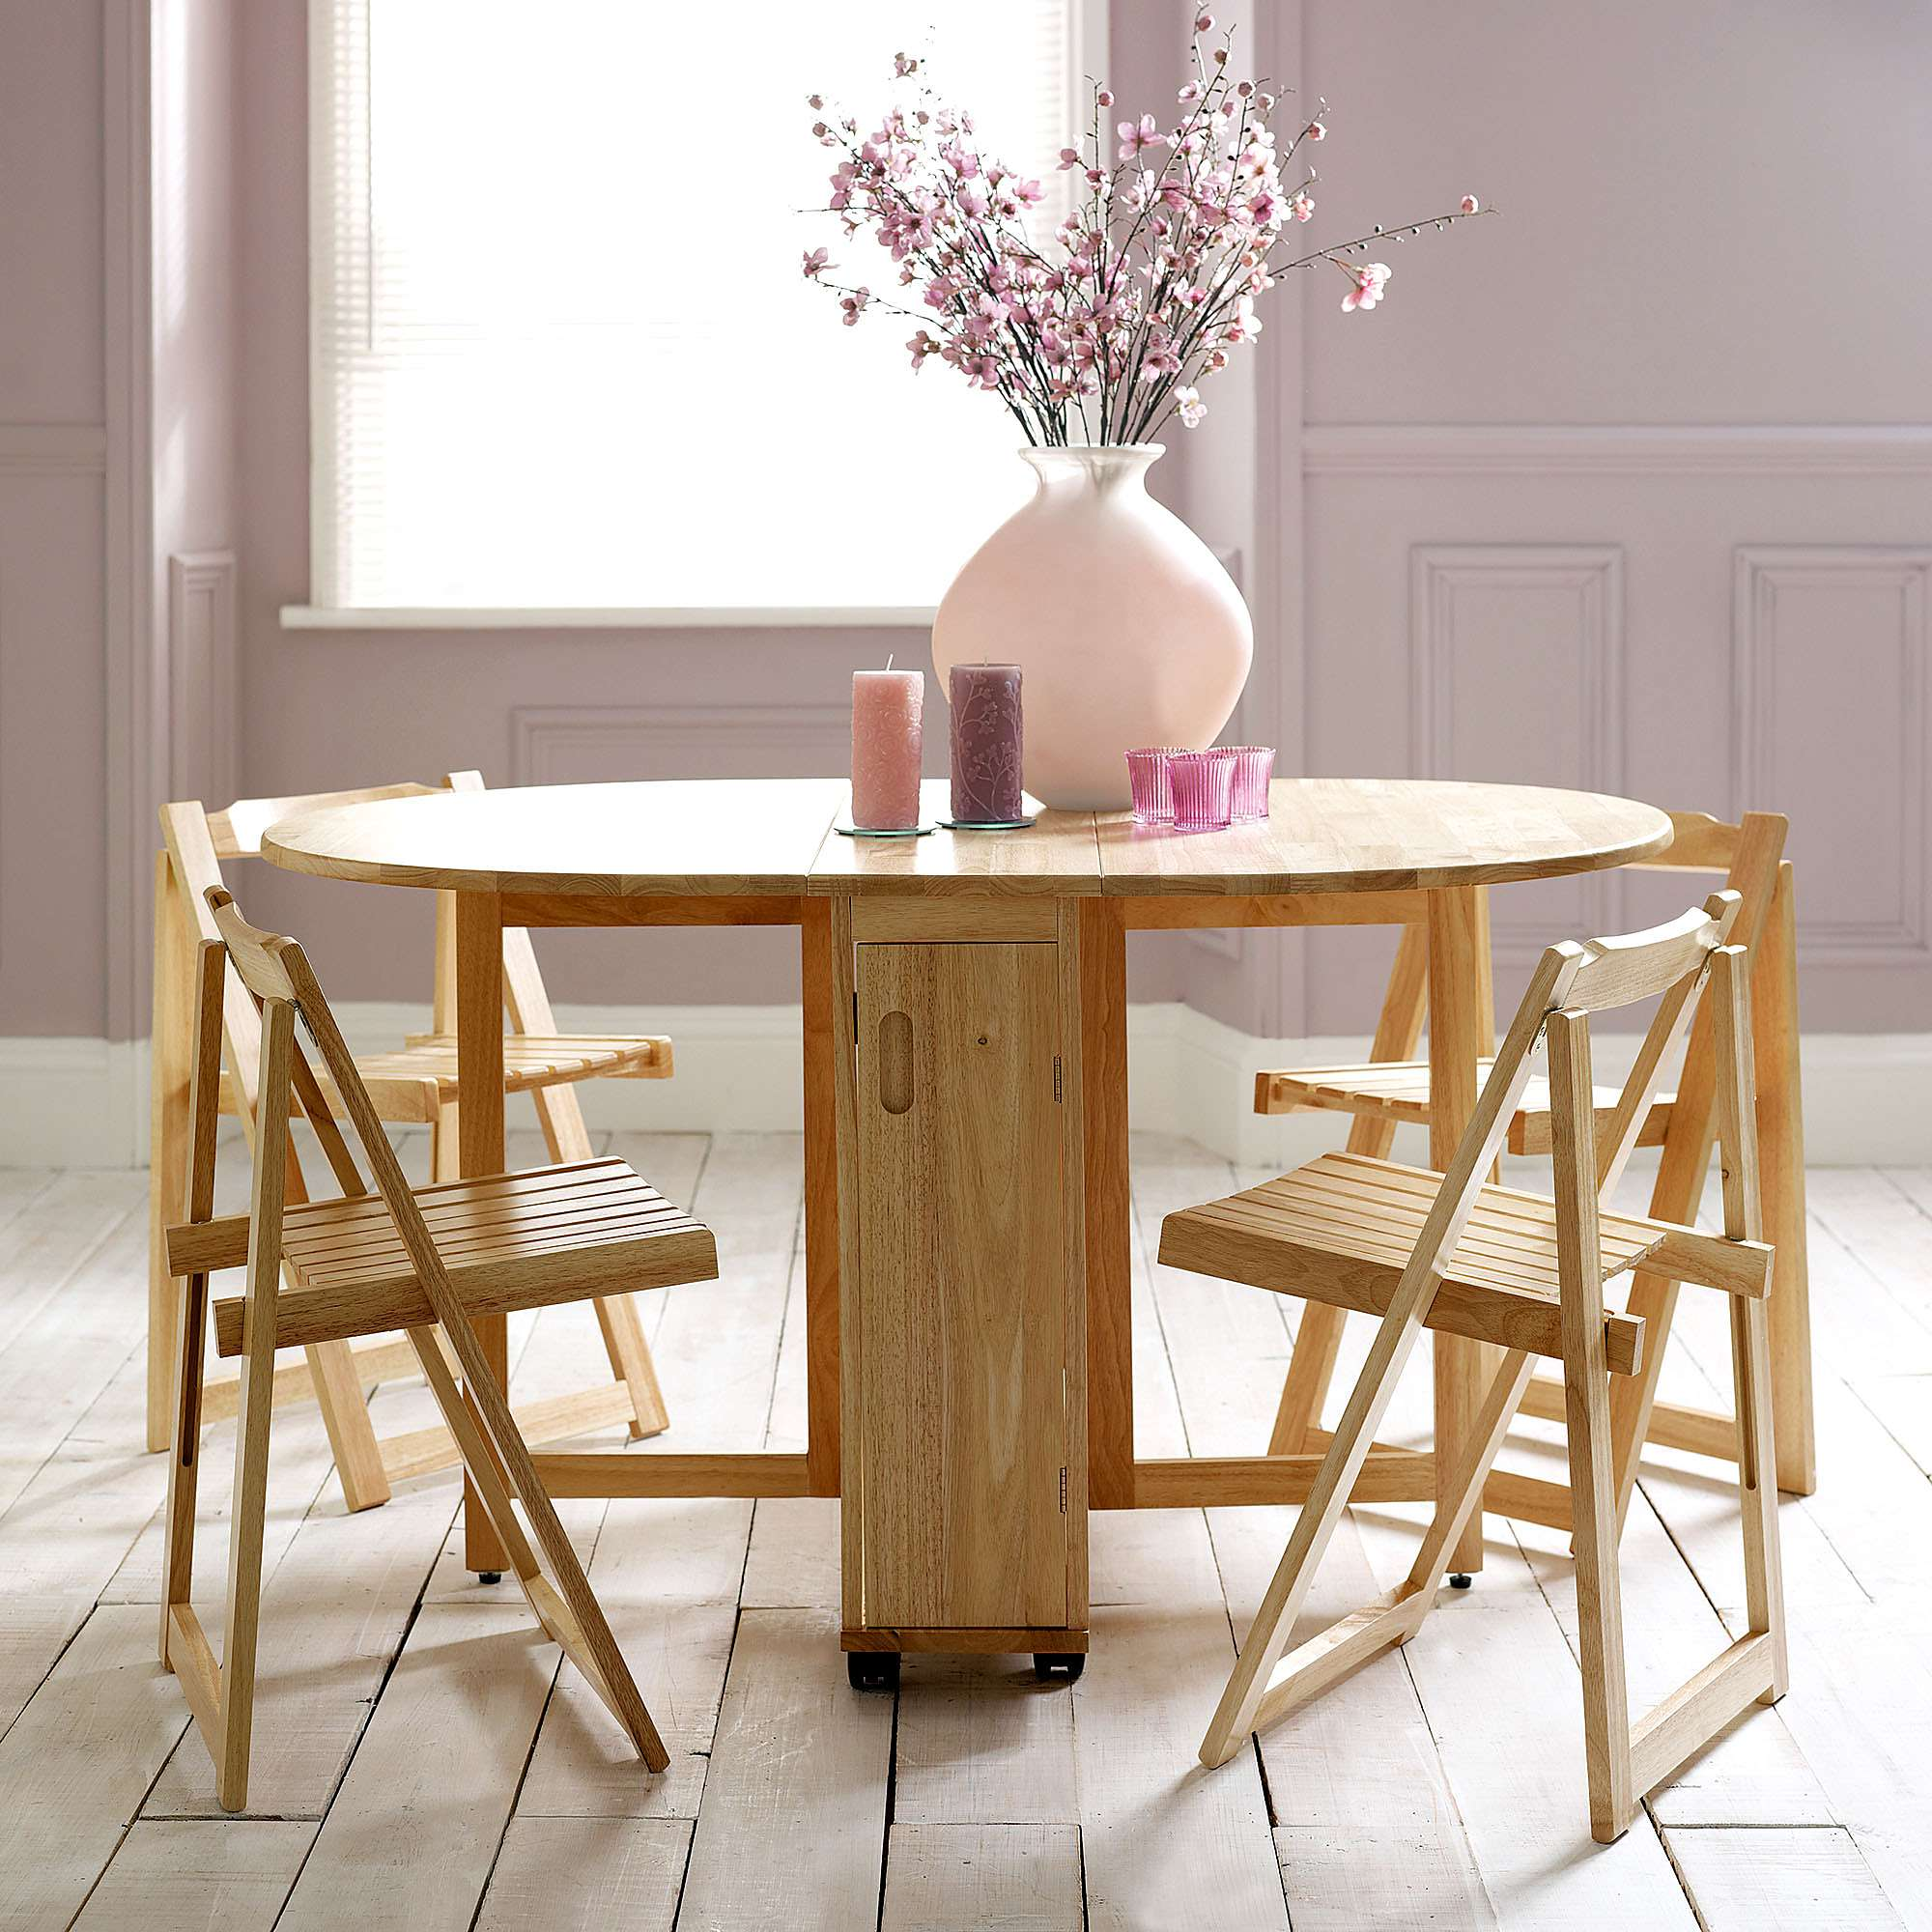 Choose a folding dining table for a small space adorable Home decor dining table